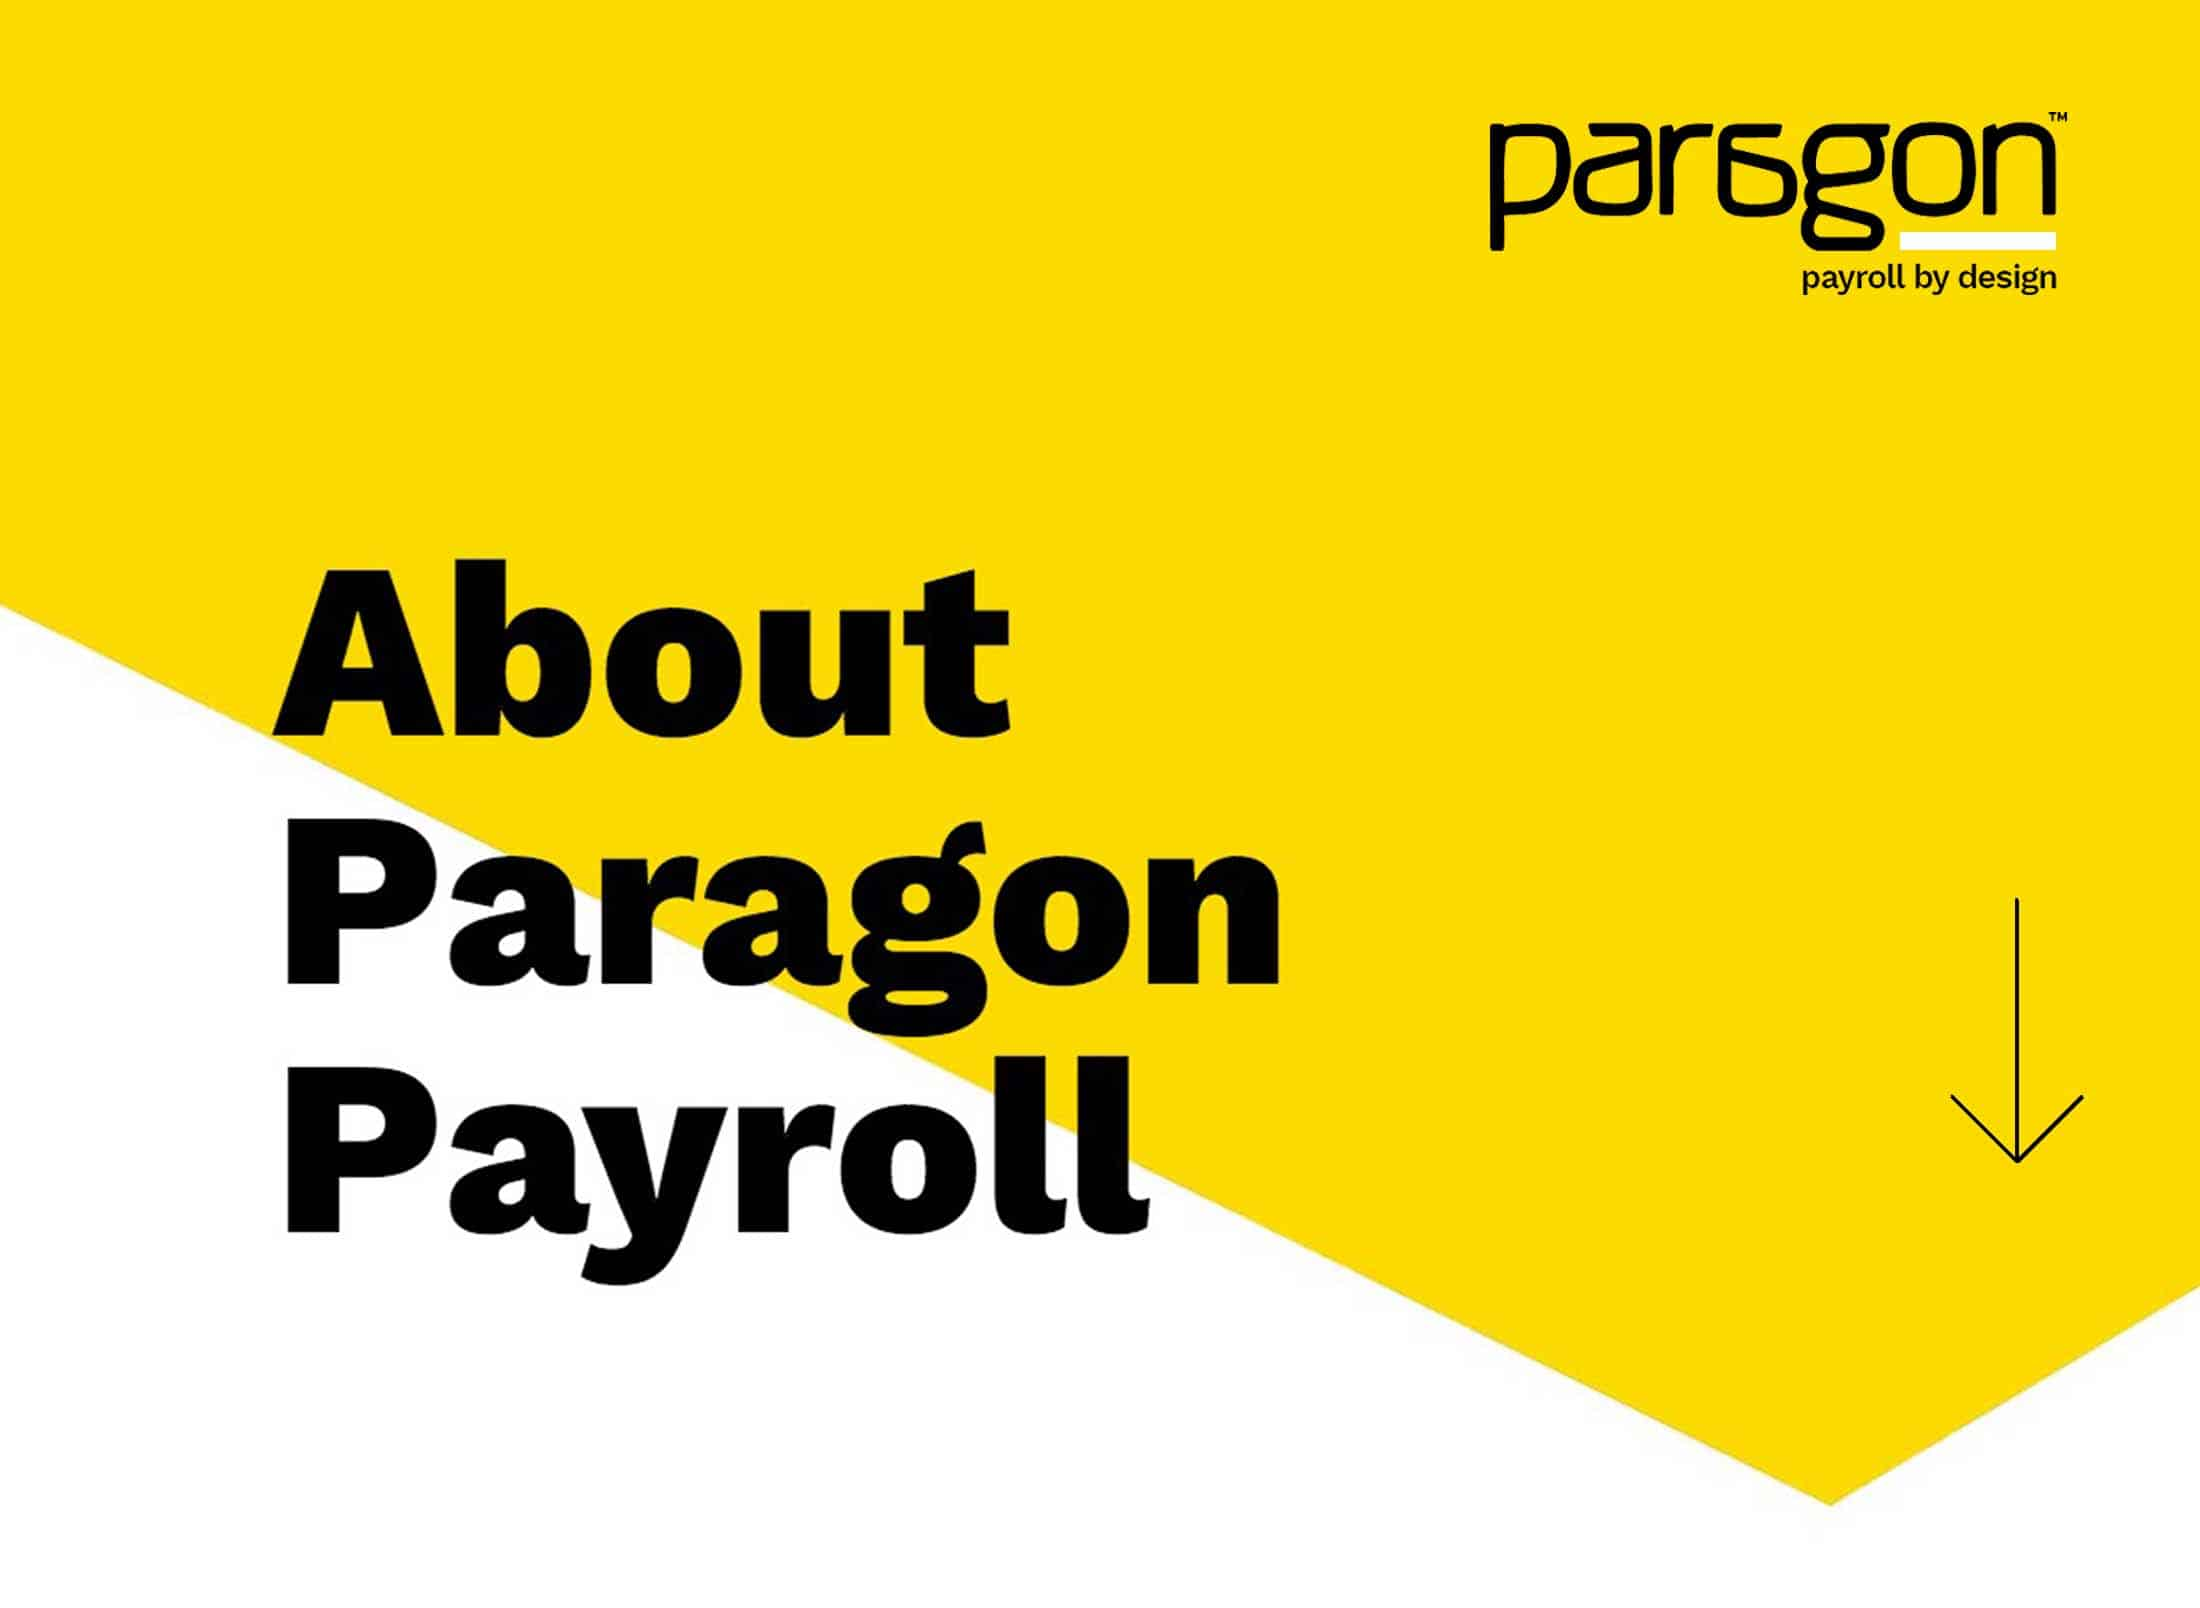 About Paragon Payroll